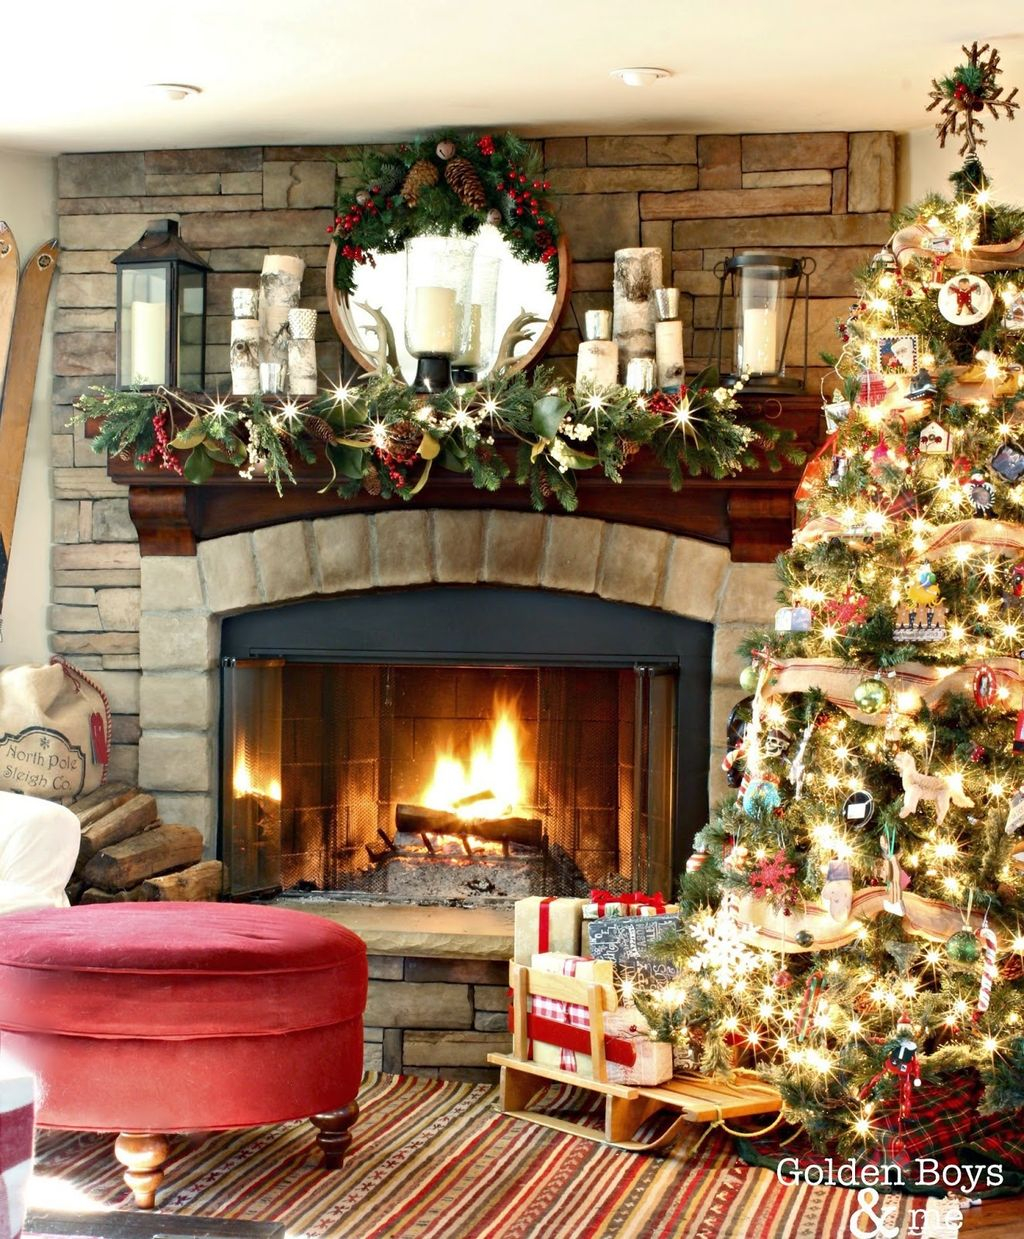 Inspiring Rustic Christmas Fireplace Ideas To Makes Your Home Warmer 28